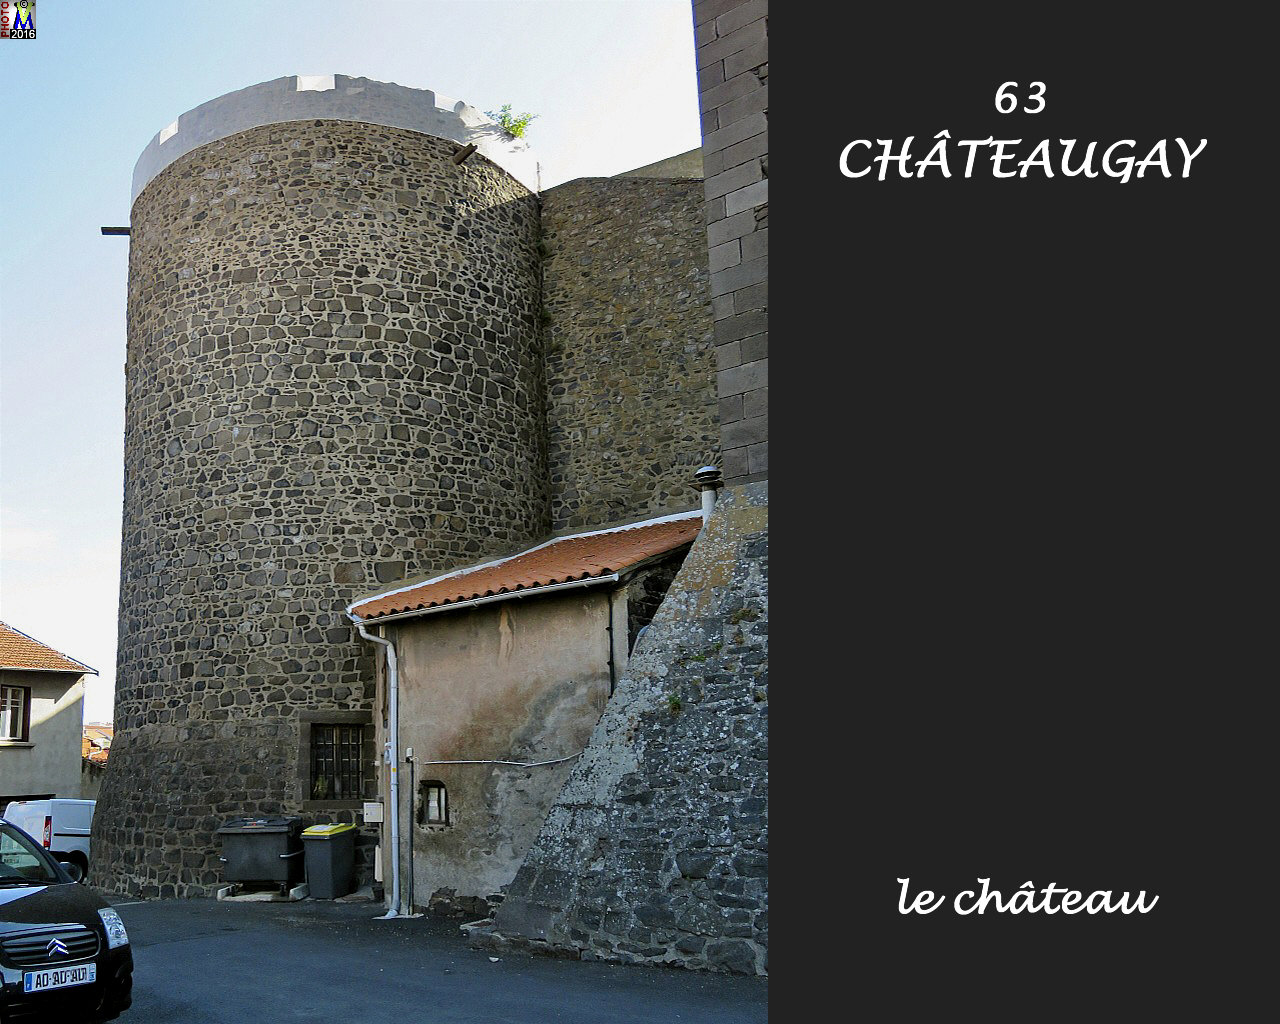 63CHATEAUGAY_chateau_108.jpg